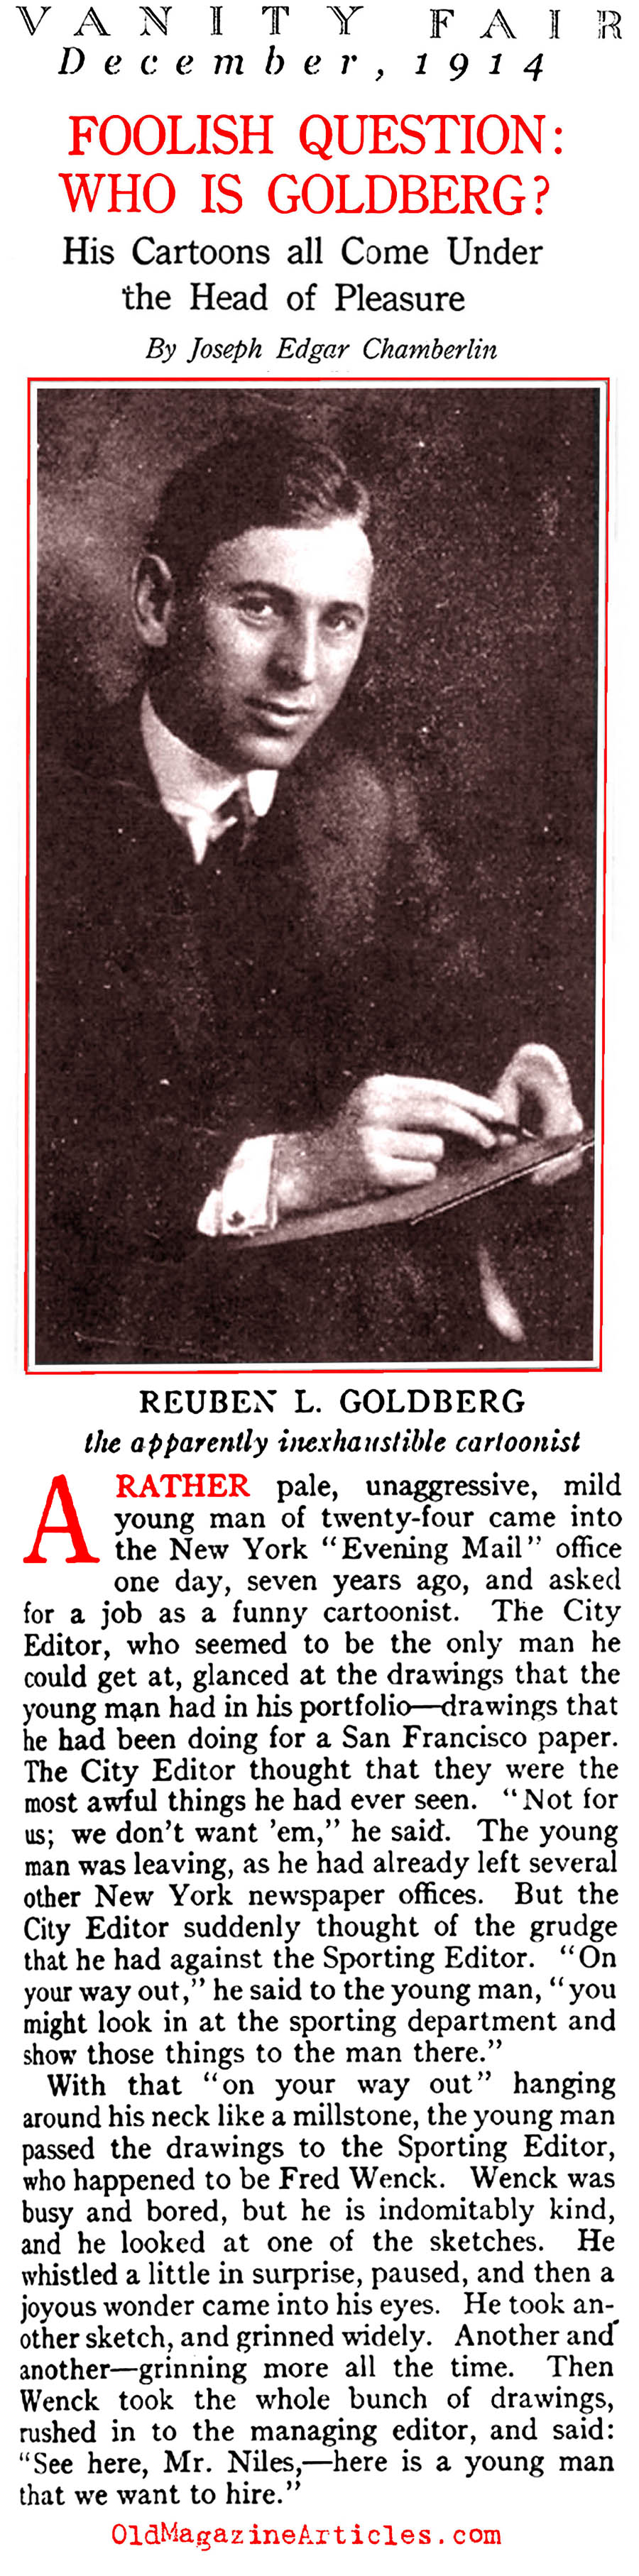 A Profile of Cartoonist Rube Goldberg, Cartoonist and Quack-Inventor  (Vanity Fair, 1914)